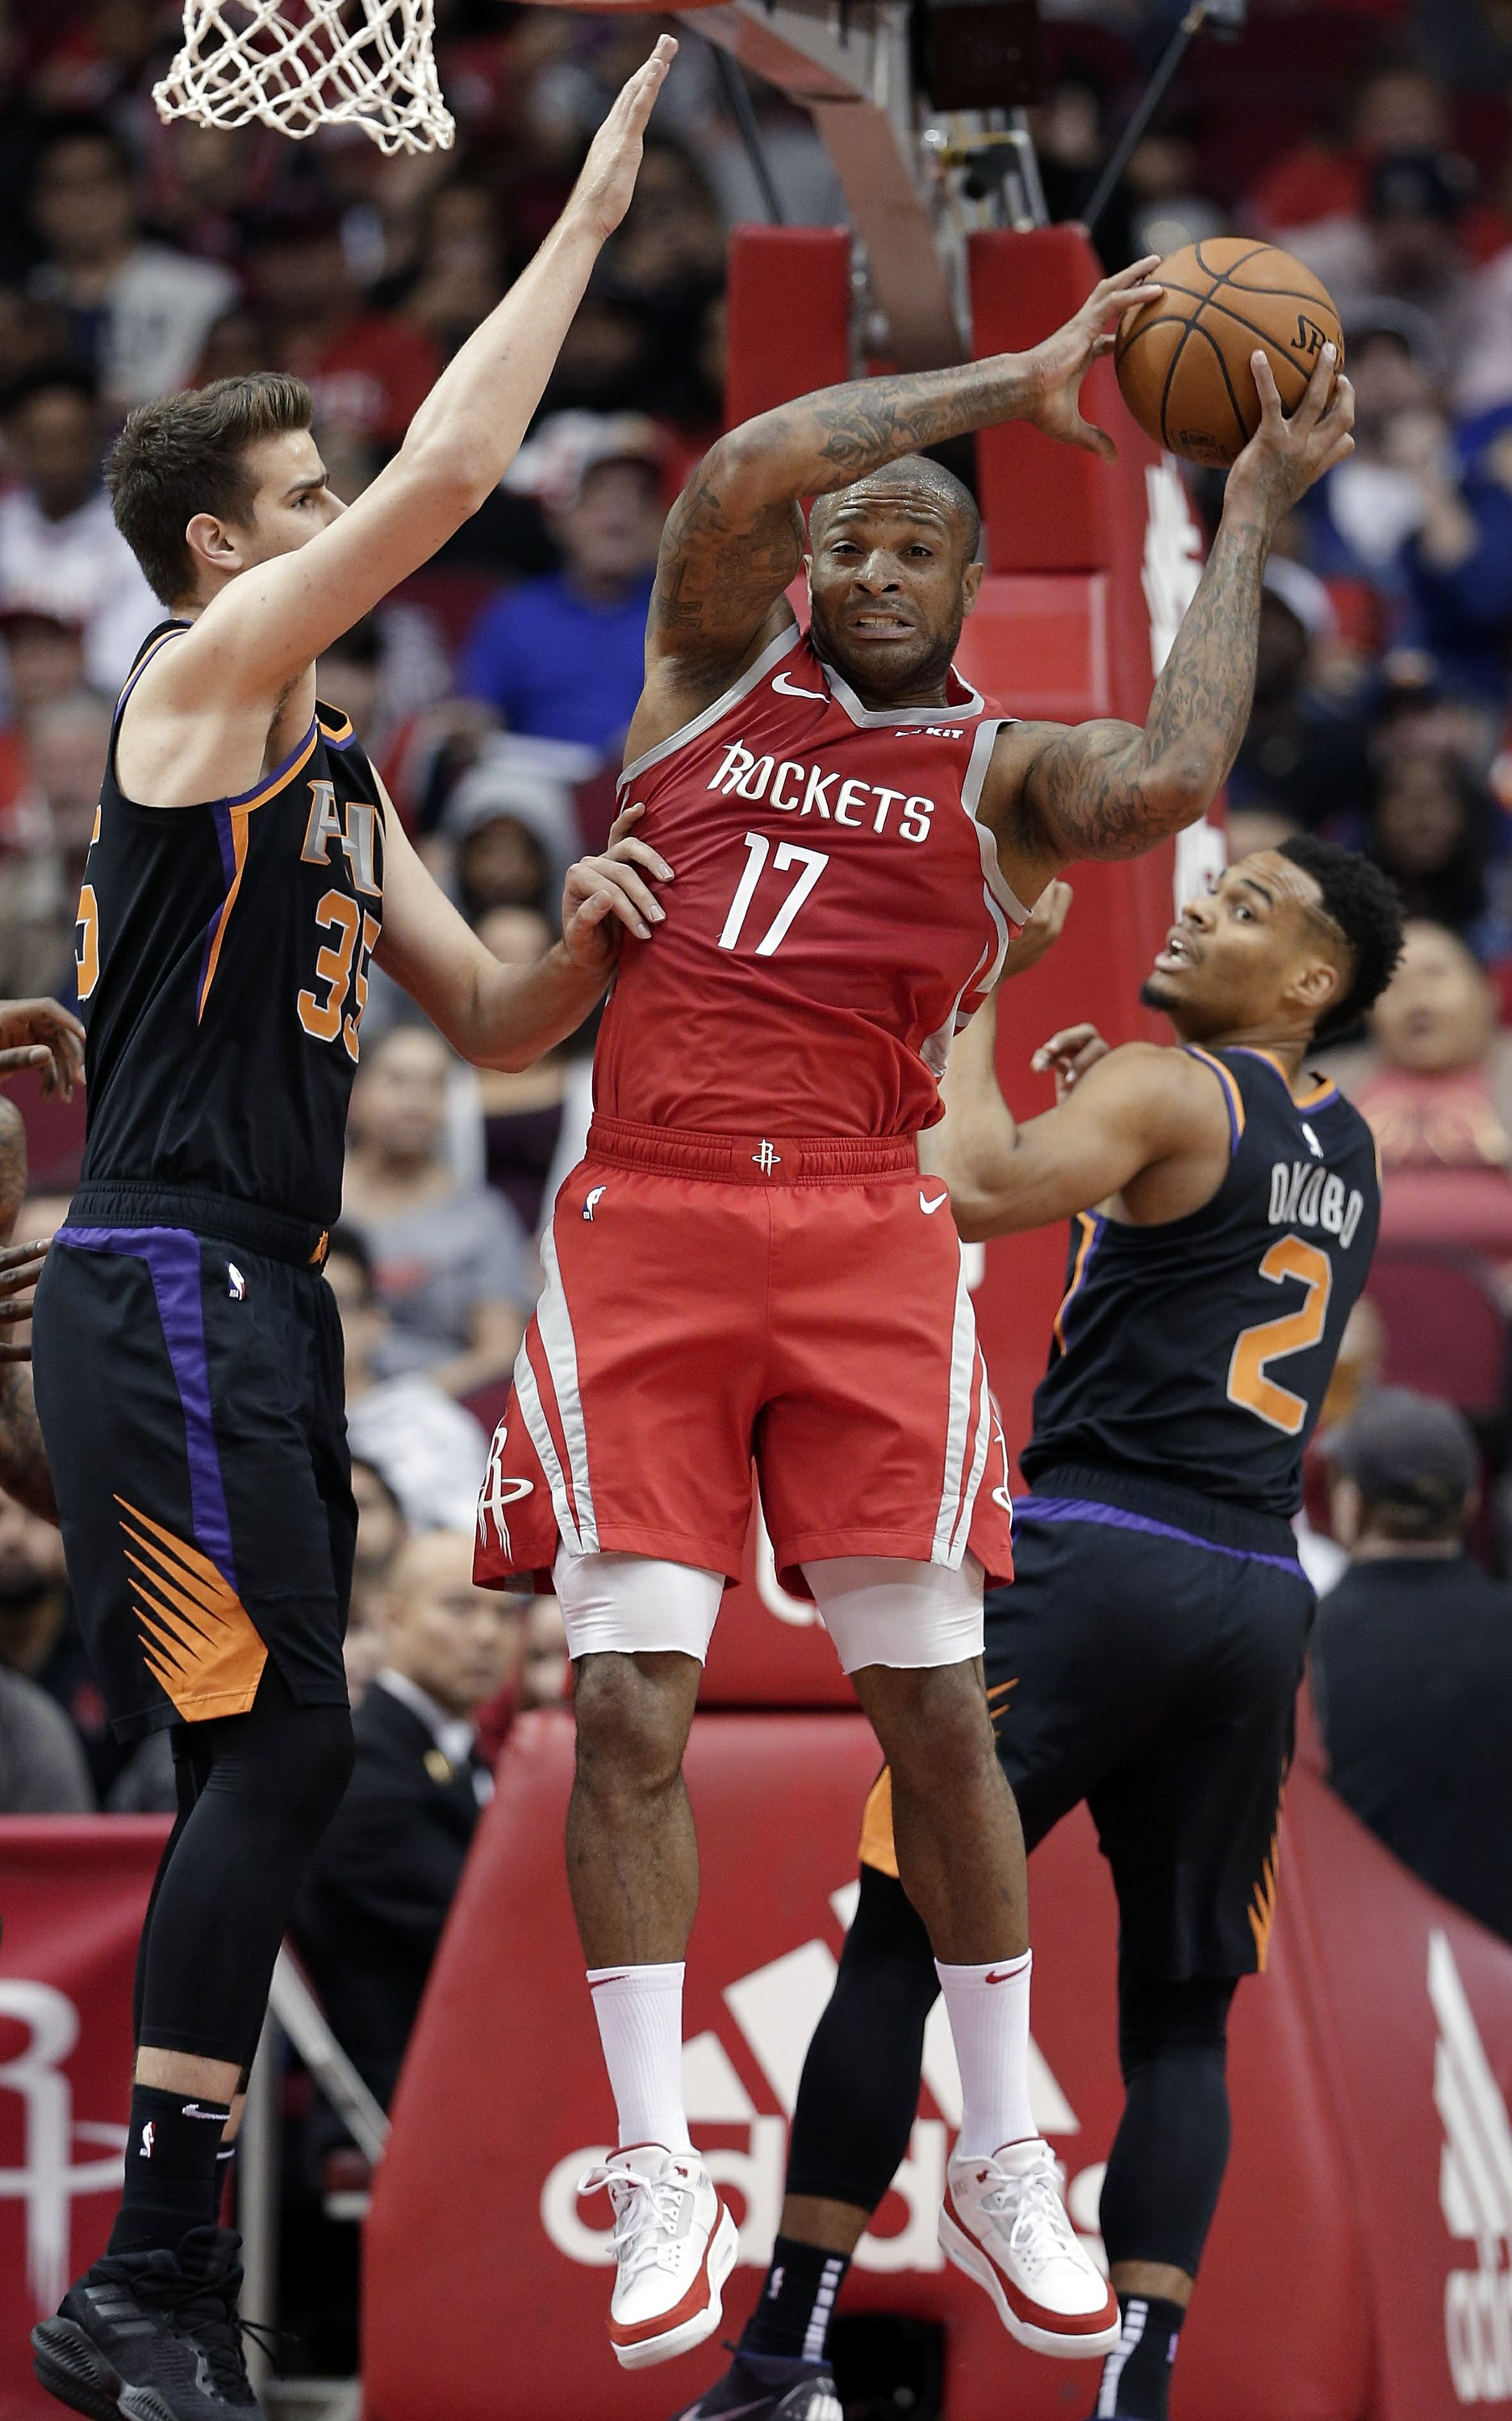 97d3c05d67a0 Rockets set NBA record with 27 3s in 149-113 rout of Suns